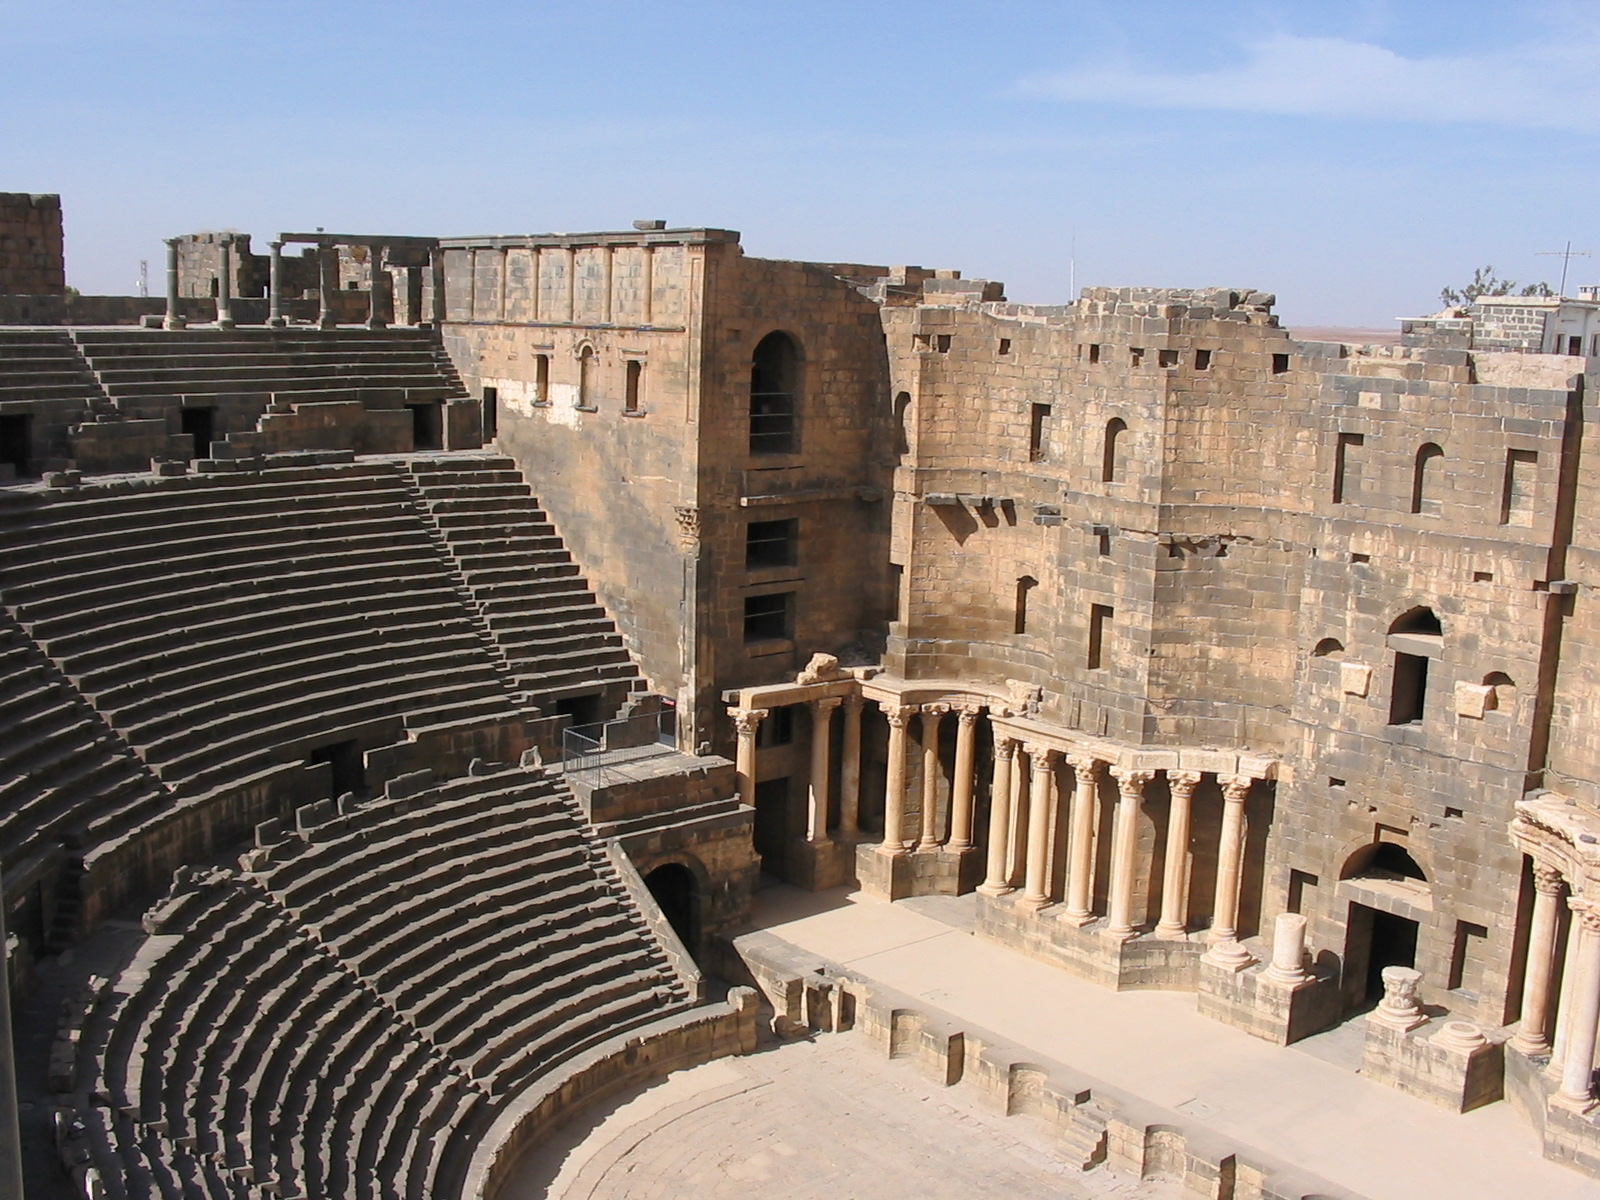 Theatre of ancient Rome